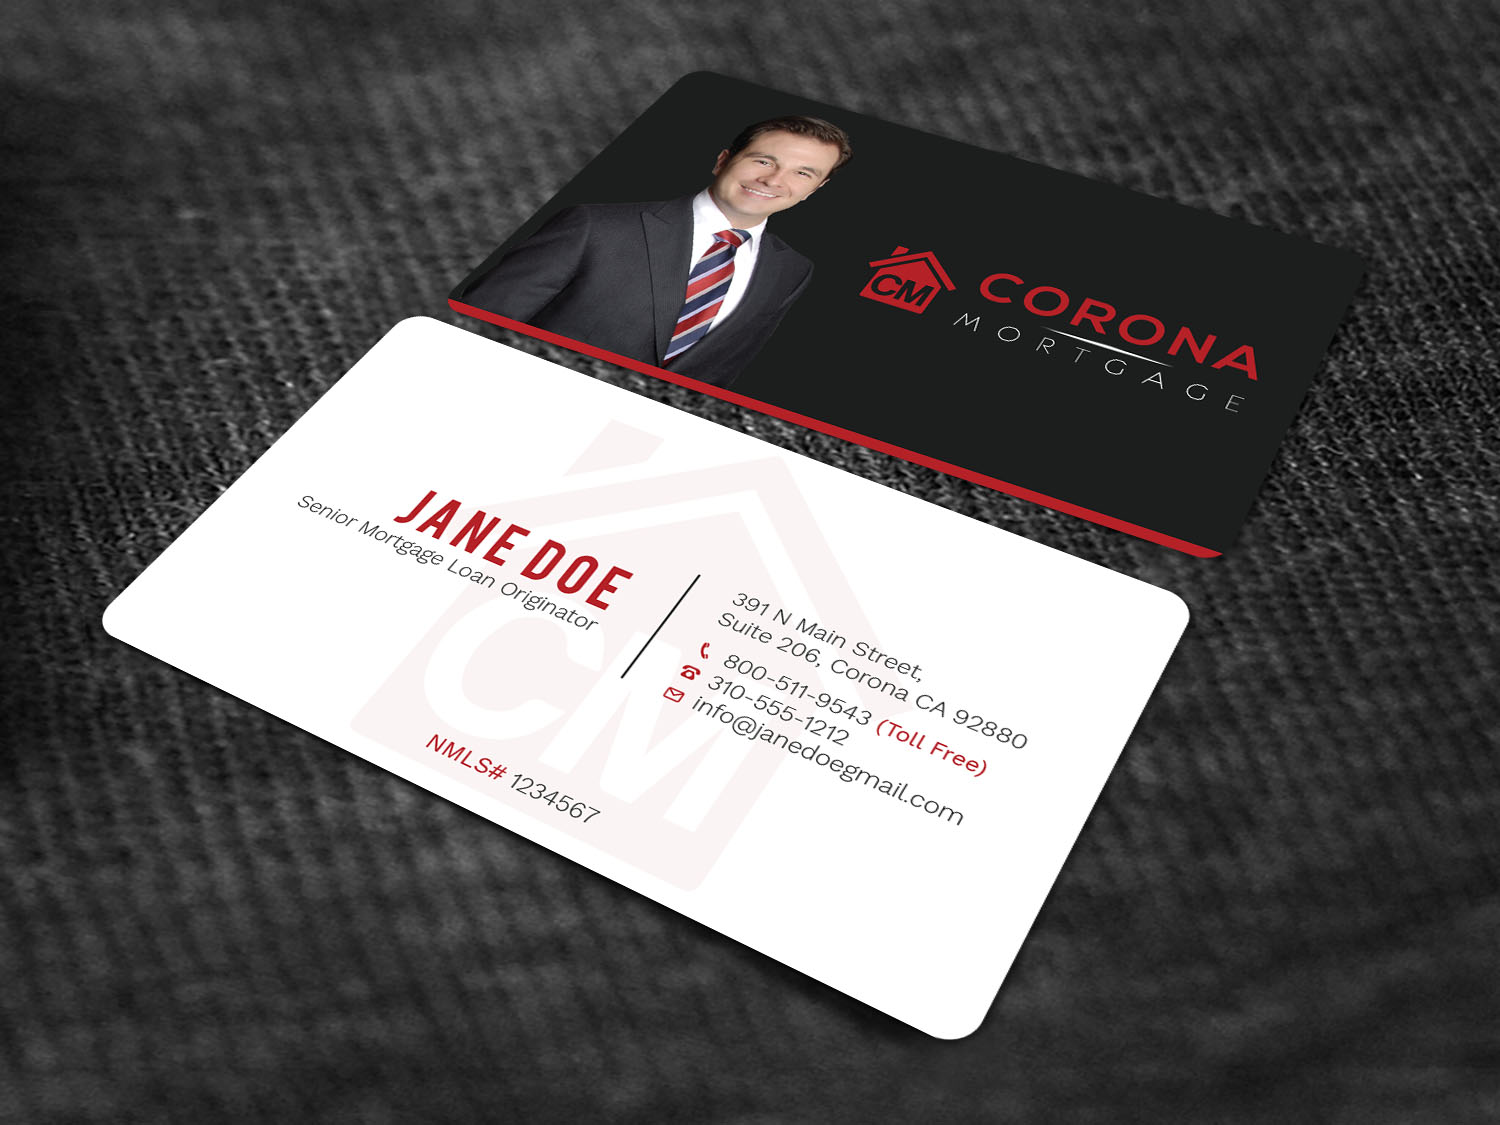 Modern upmarket mortgage lender business card design for a company business card design by avanger000 for this project design 17320599 reheart Choice Image